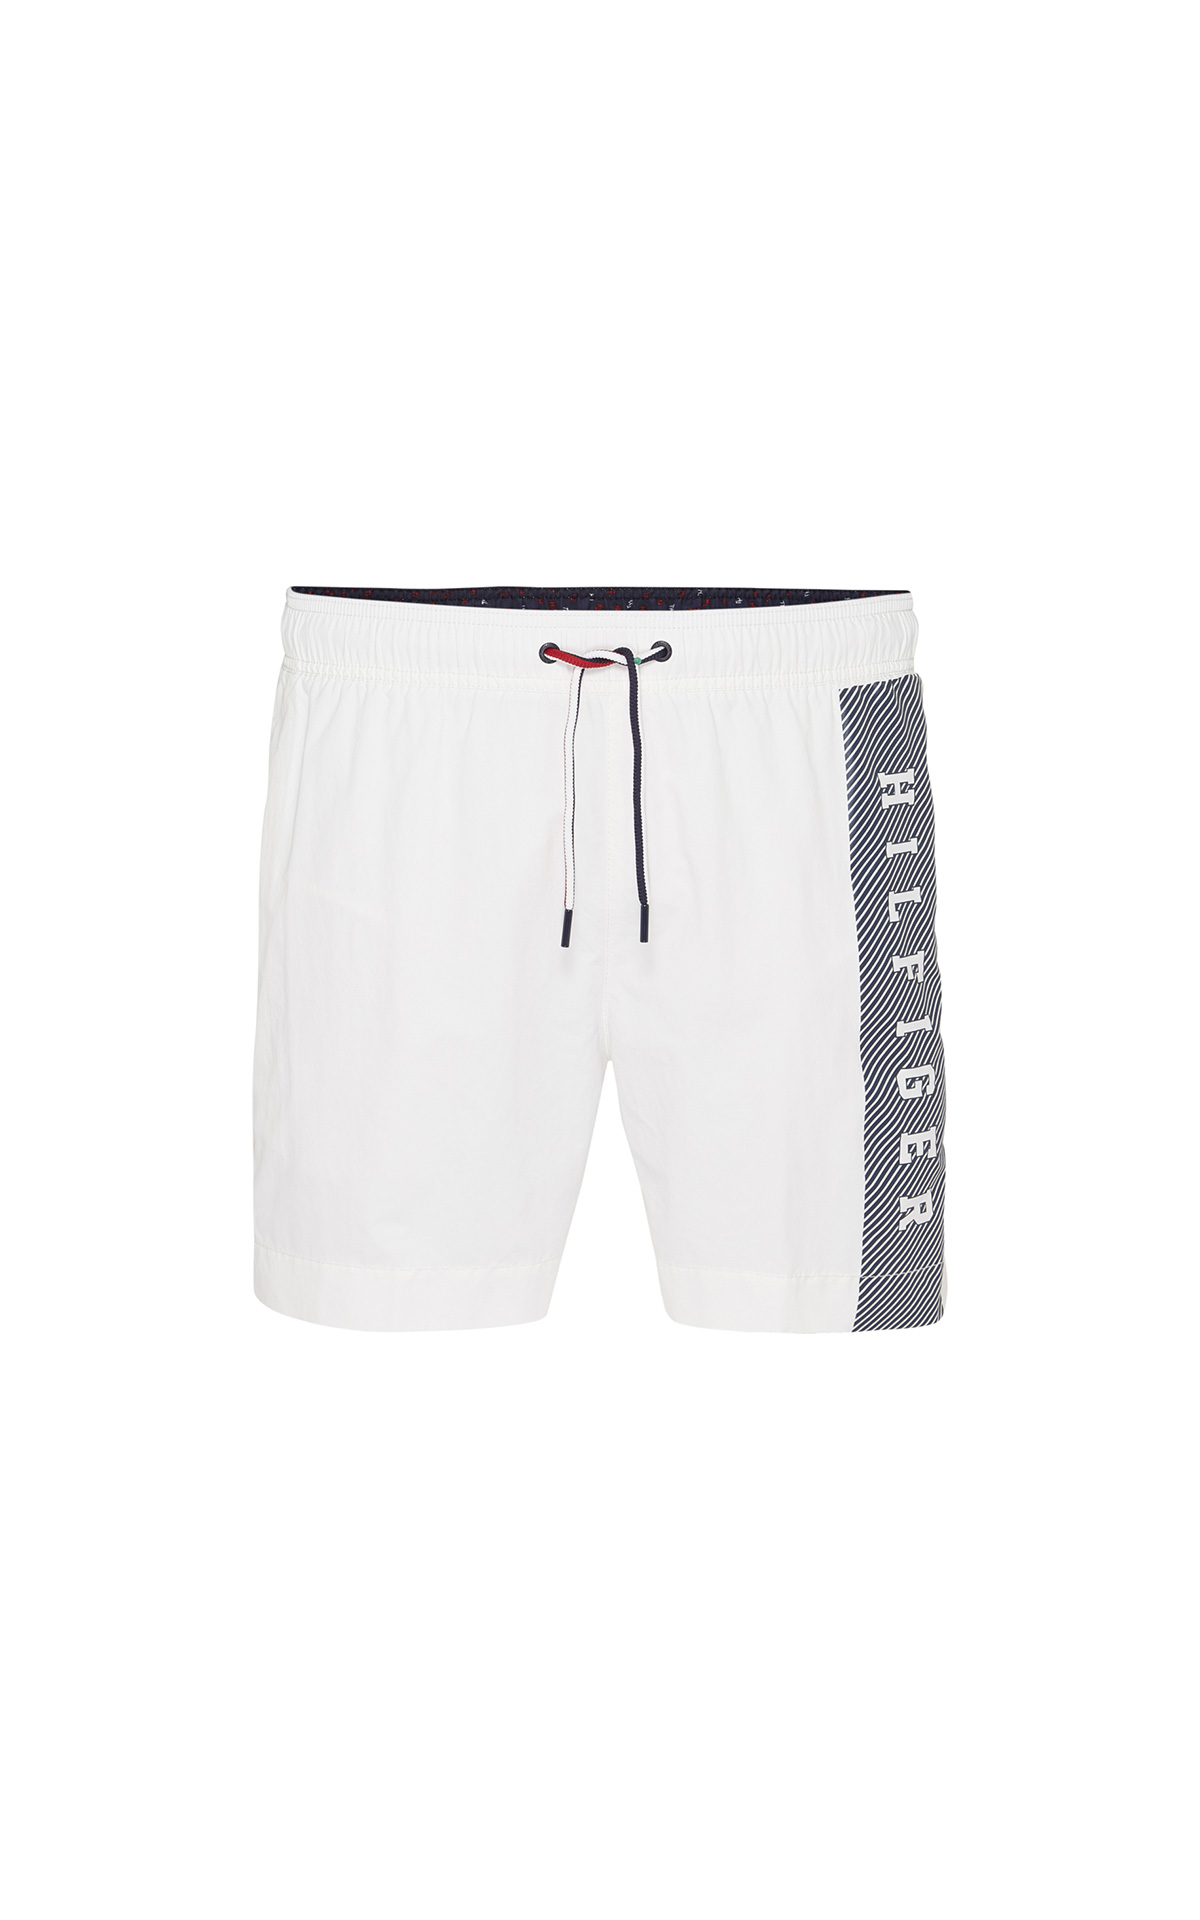 Tommy Hilfiger swimshorts at The Bicester Village Shopping Collection